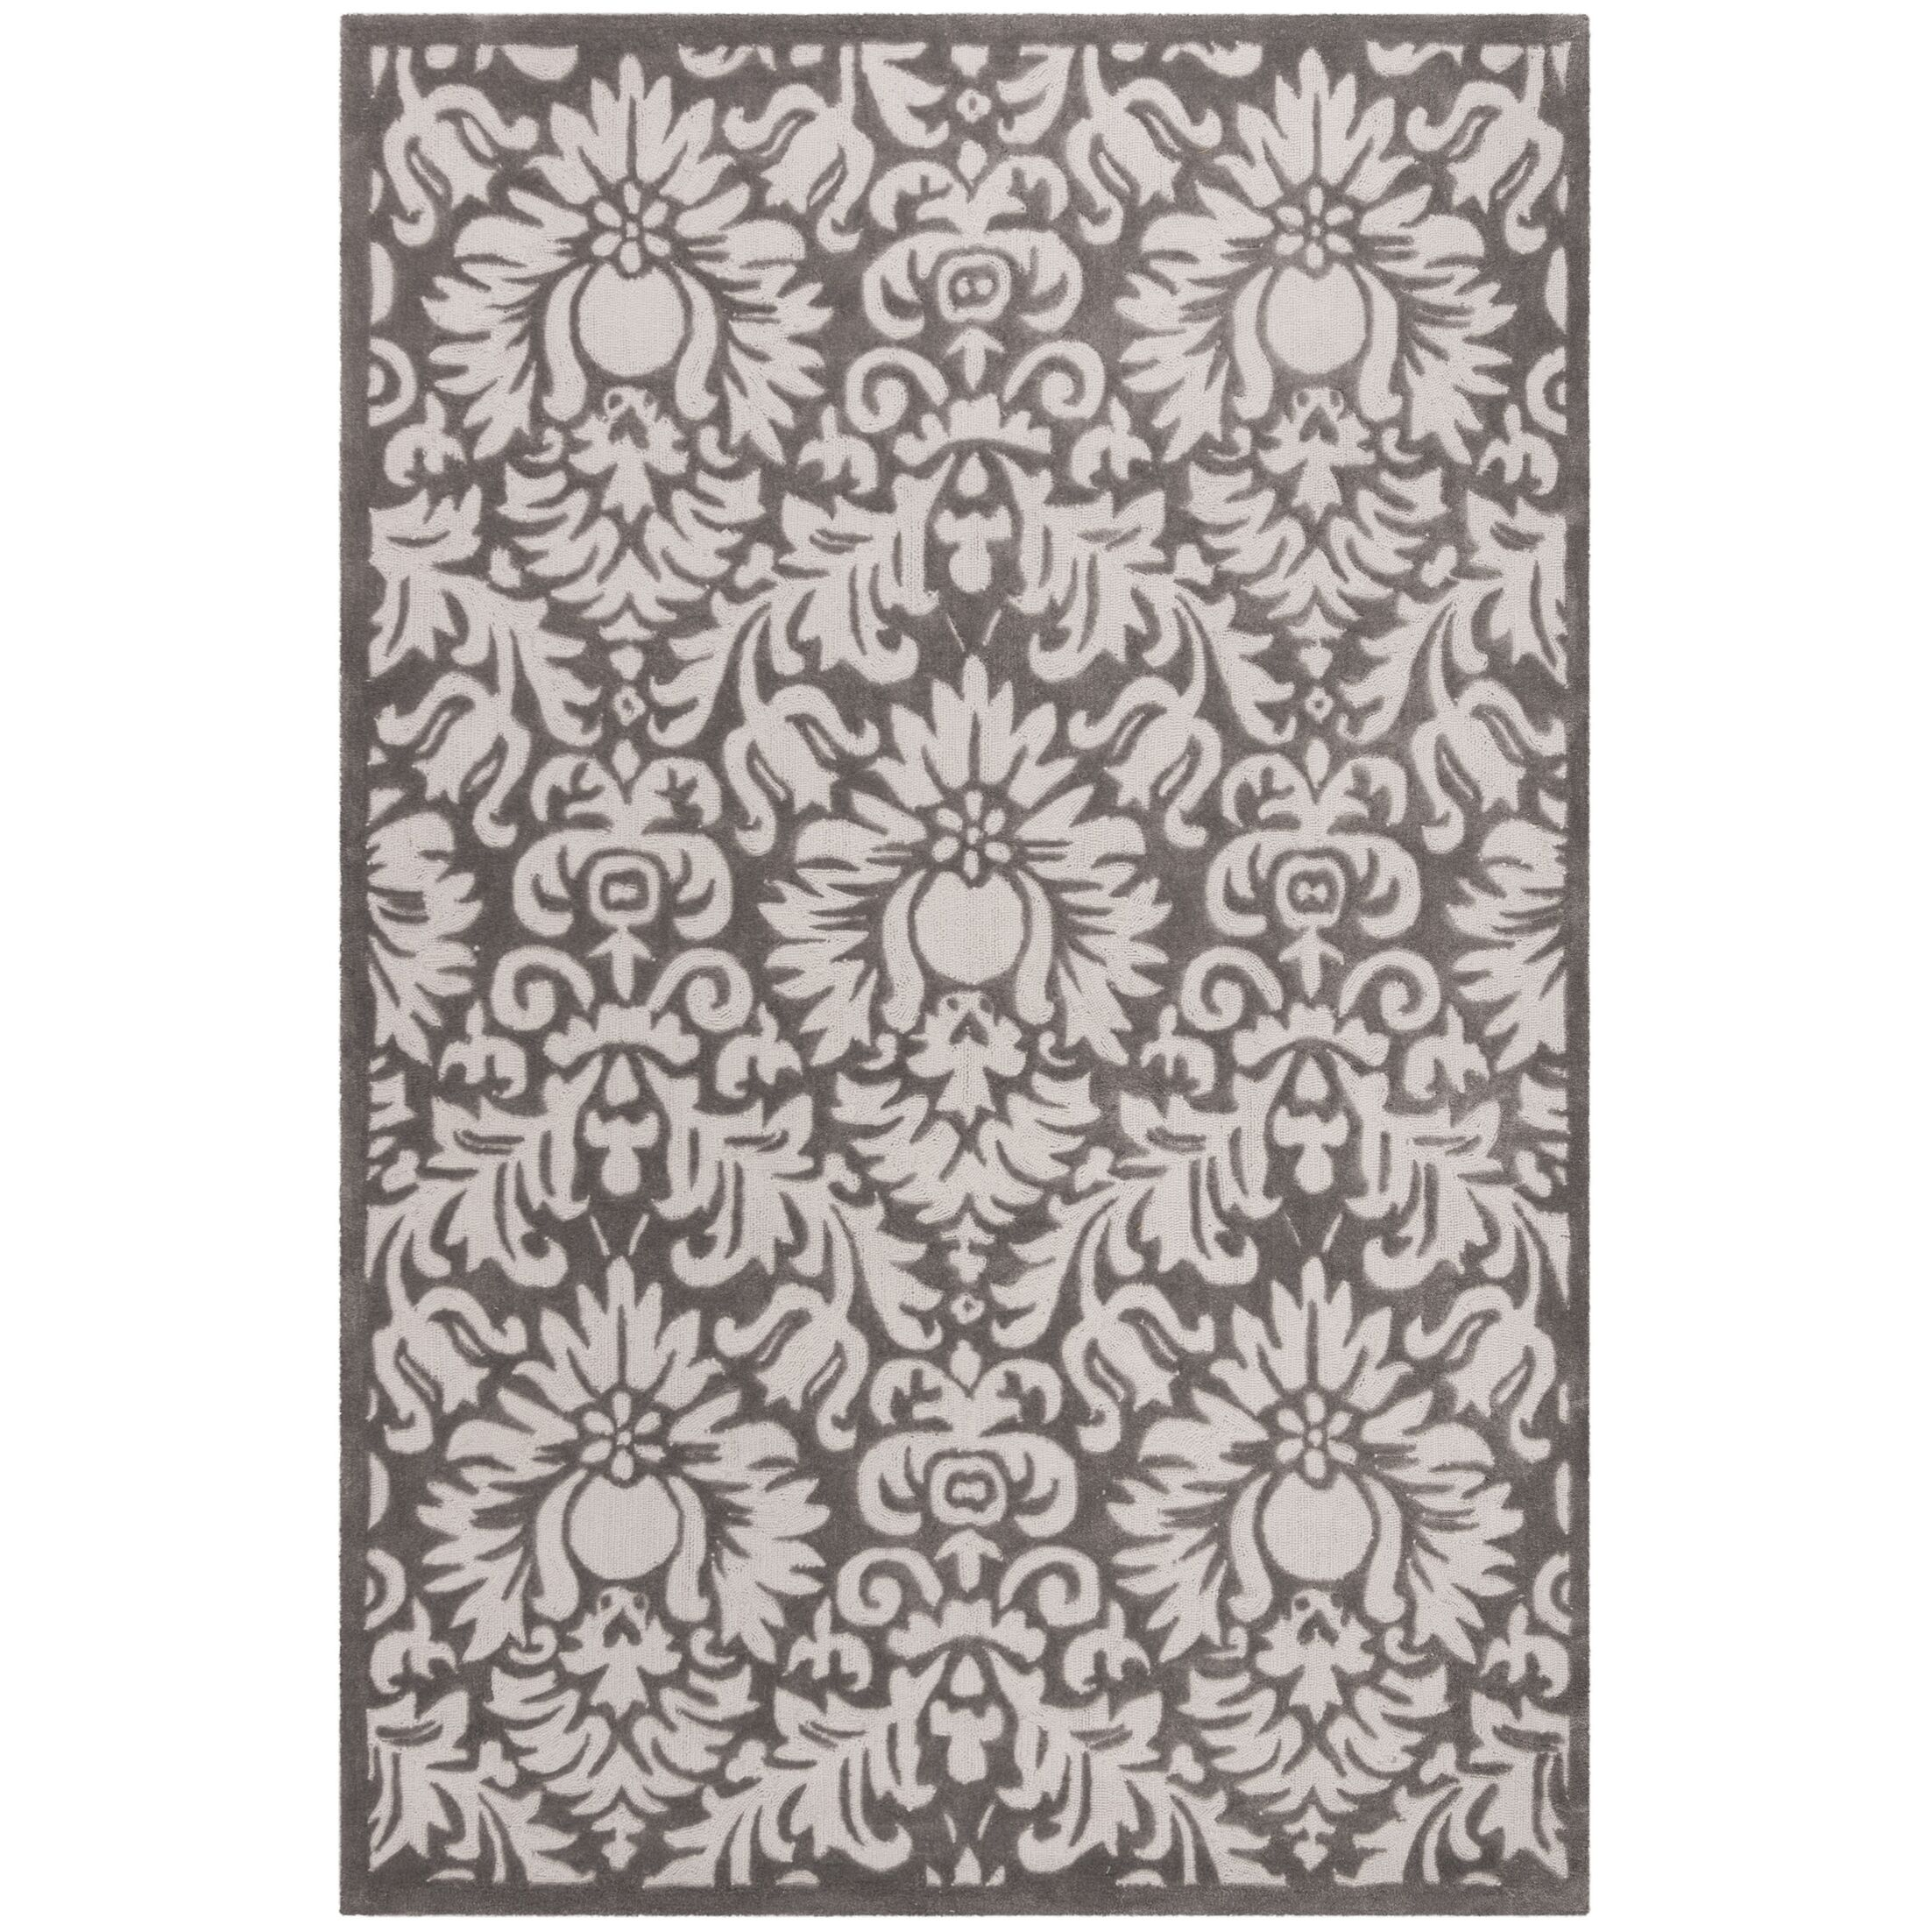 Kingsview Hand-Hooked Gray/Beige Area Rug Rug Size: Rectangle 3' x 5'